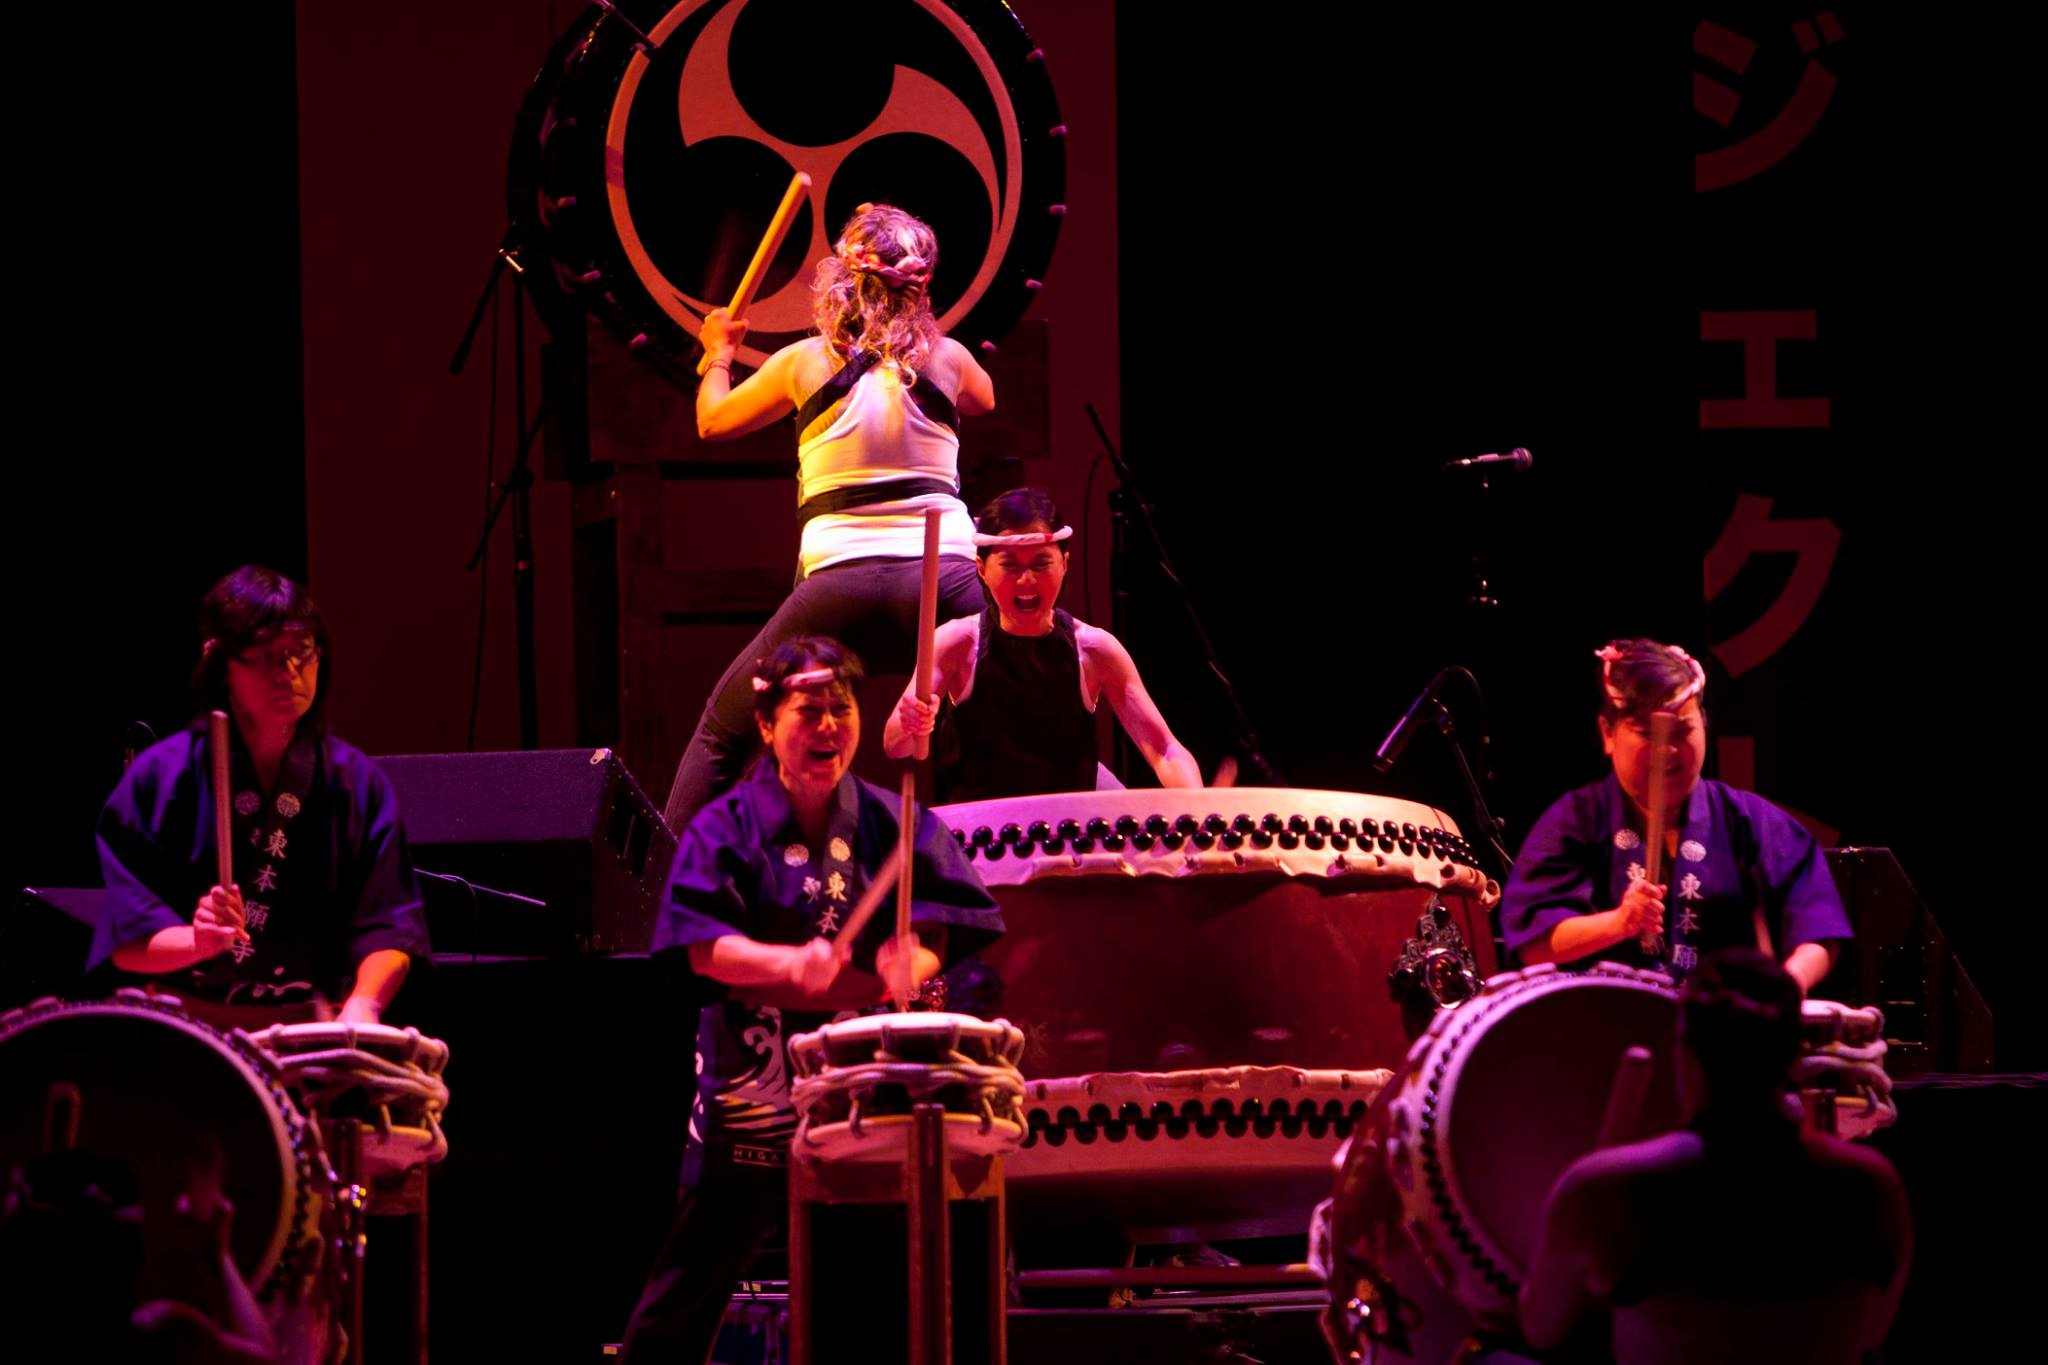 Bombu Taiko performing Kaminari no Koe